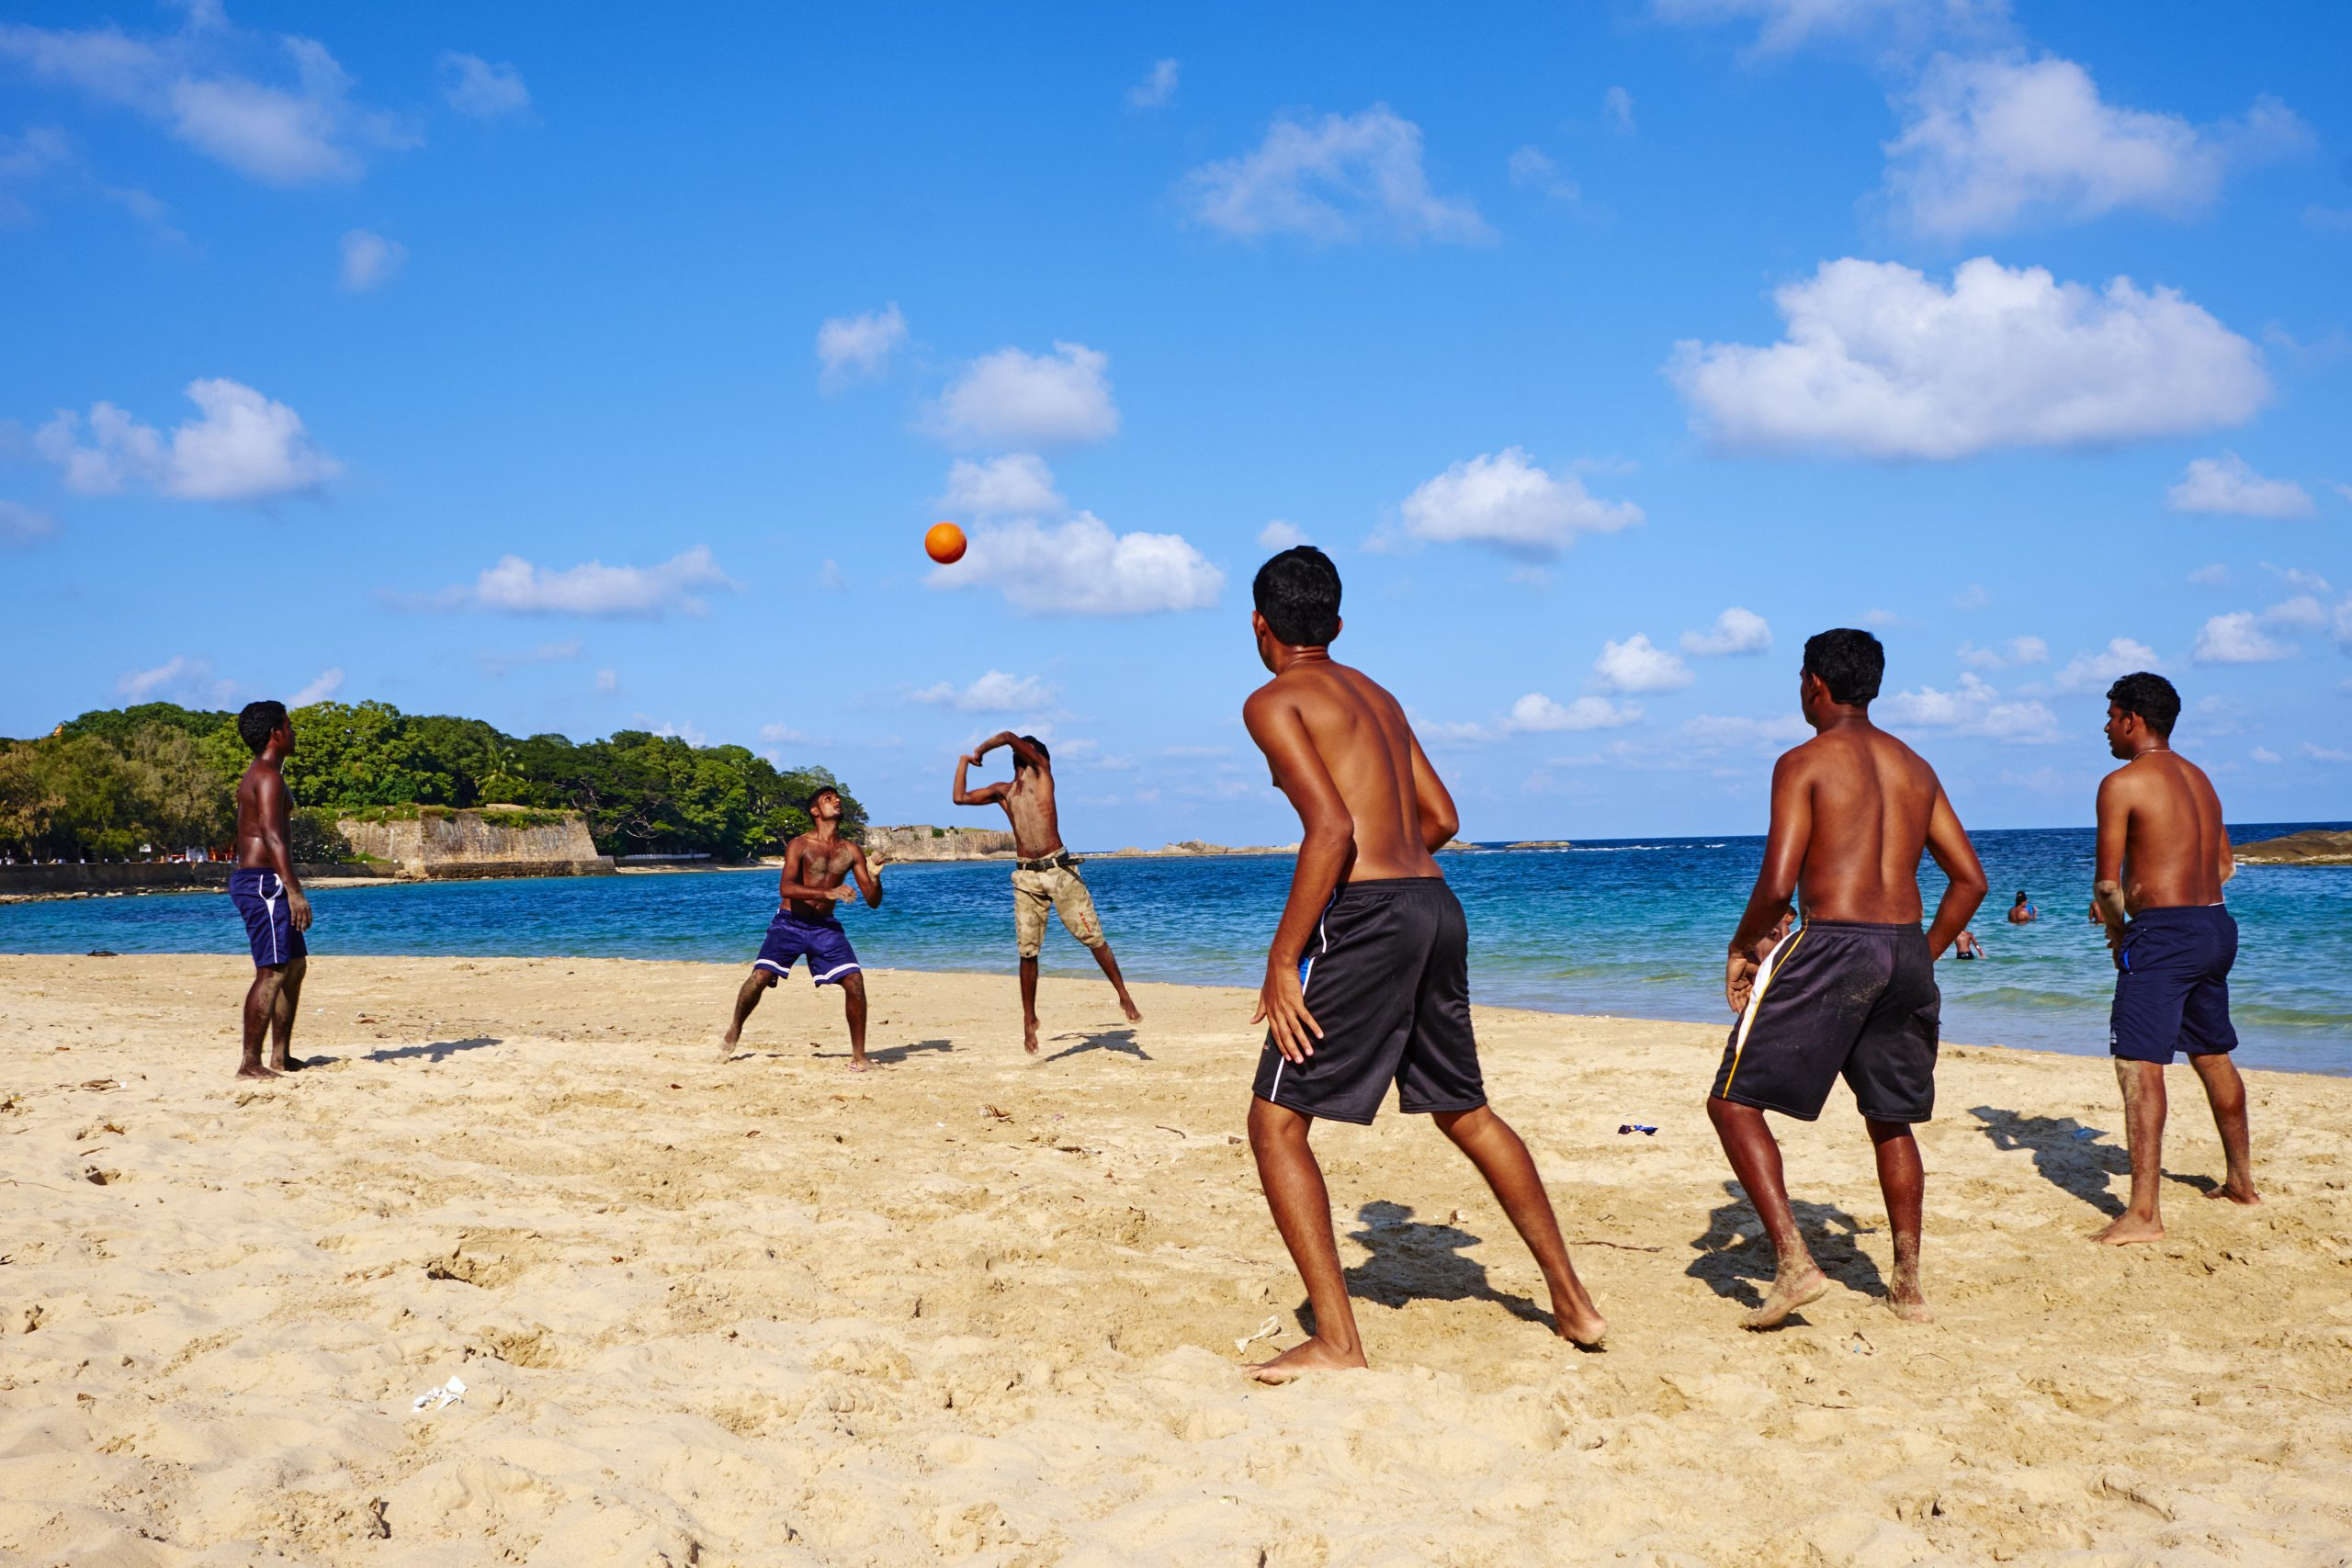 Sri Lanka, Trincomalee, beach volley